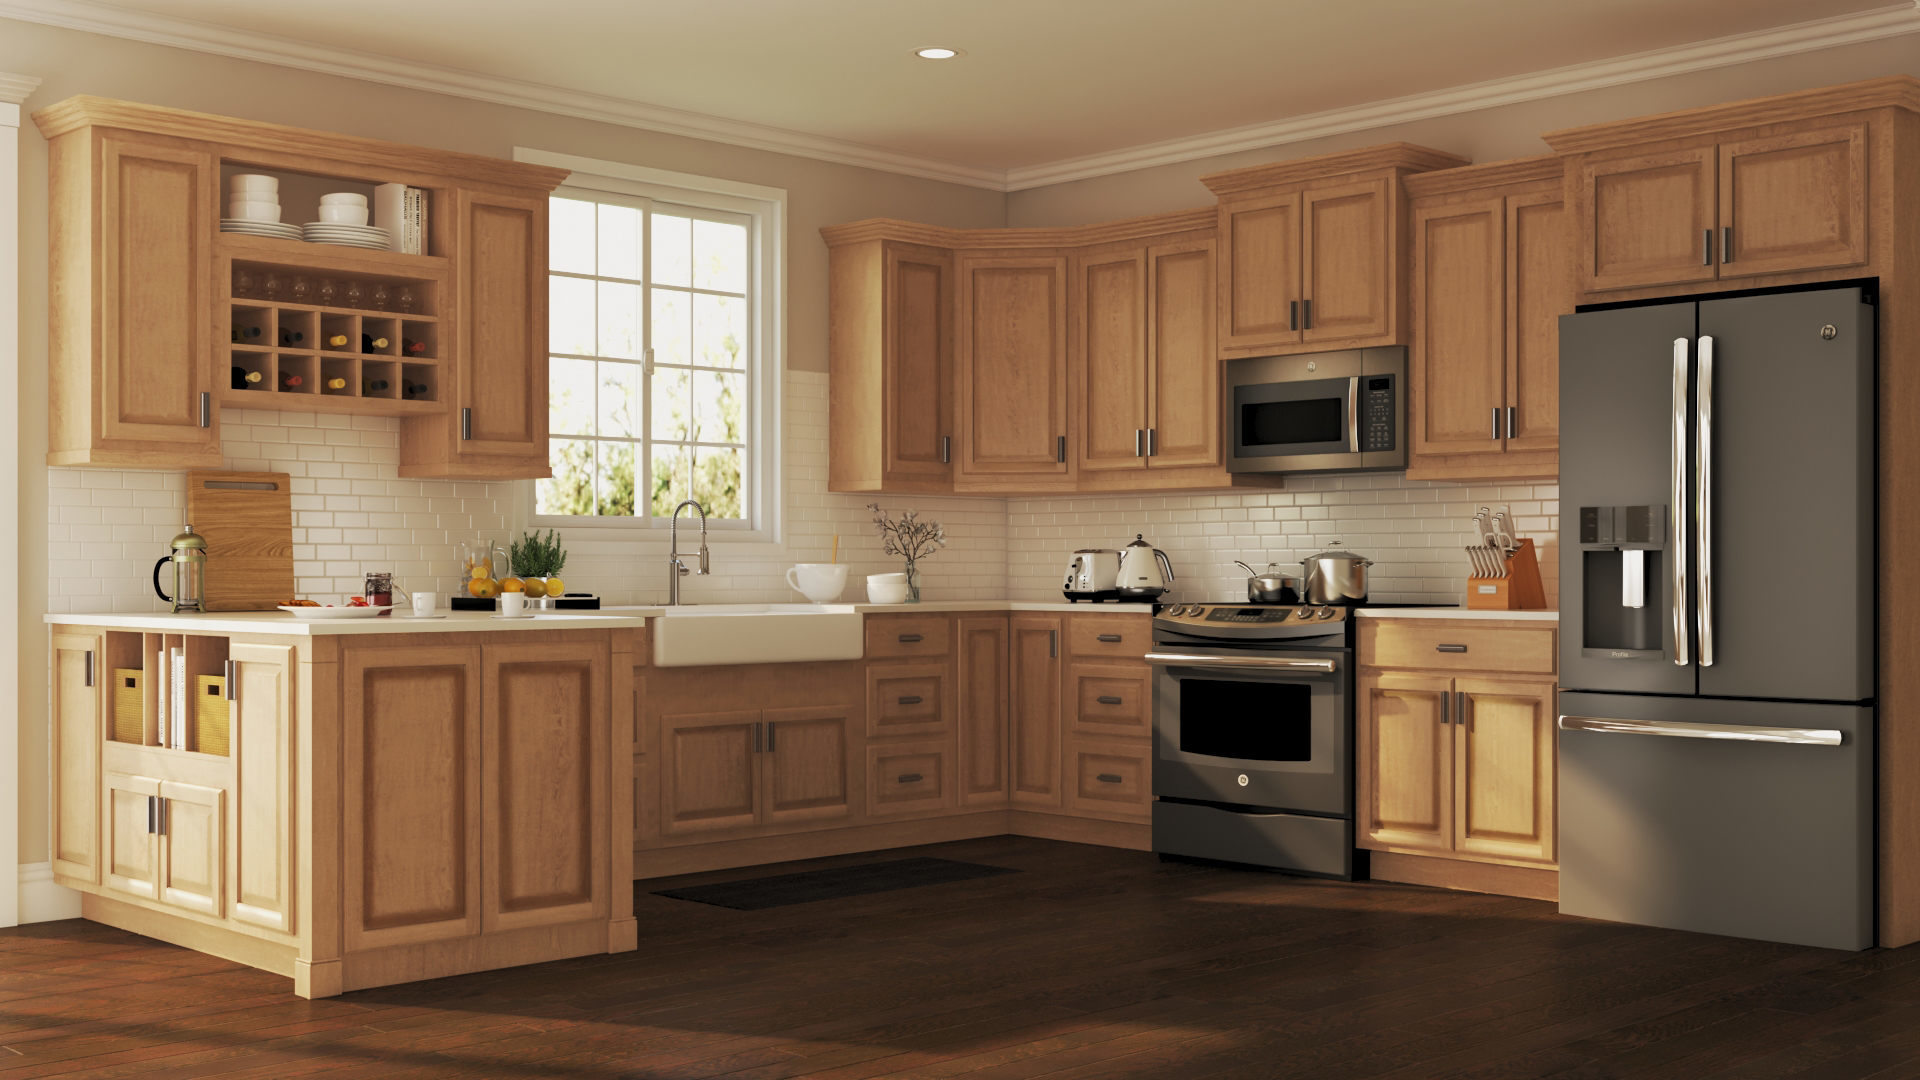 Kitchen Cabinets Wall Hampton Wall Kitchen Cabinets In Medium Oak Kitchen